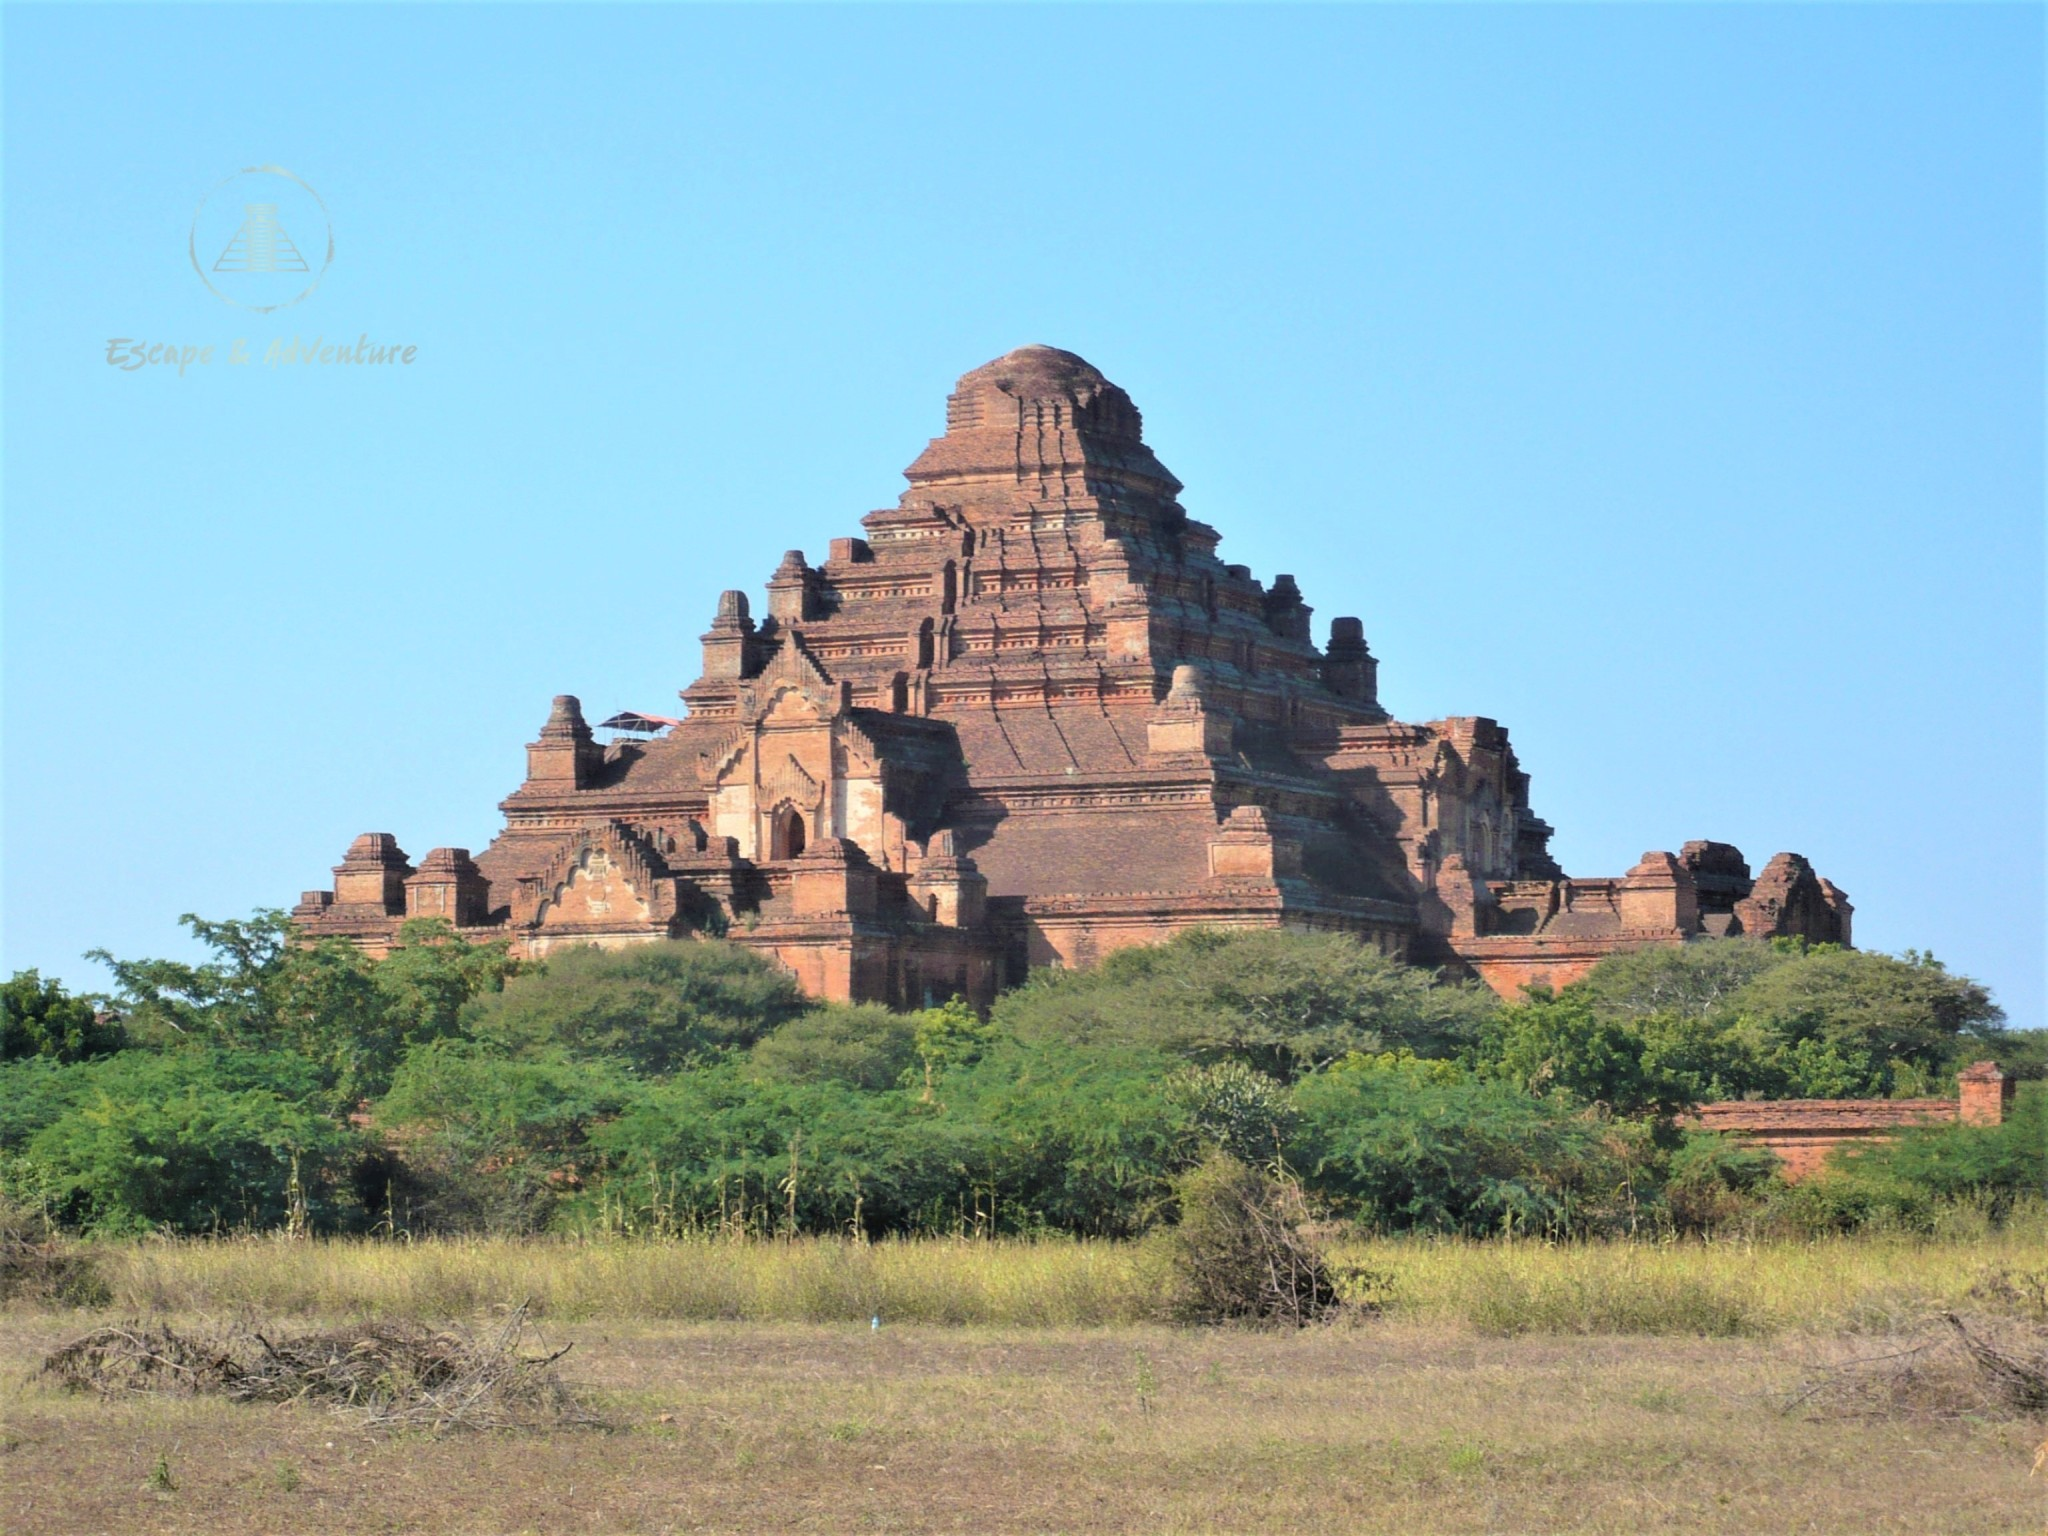 Pyramid-shaped temple situated on the plains of Bagan, Myanmar.